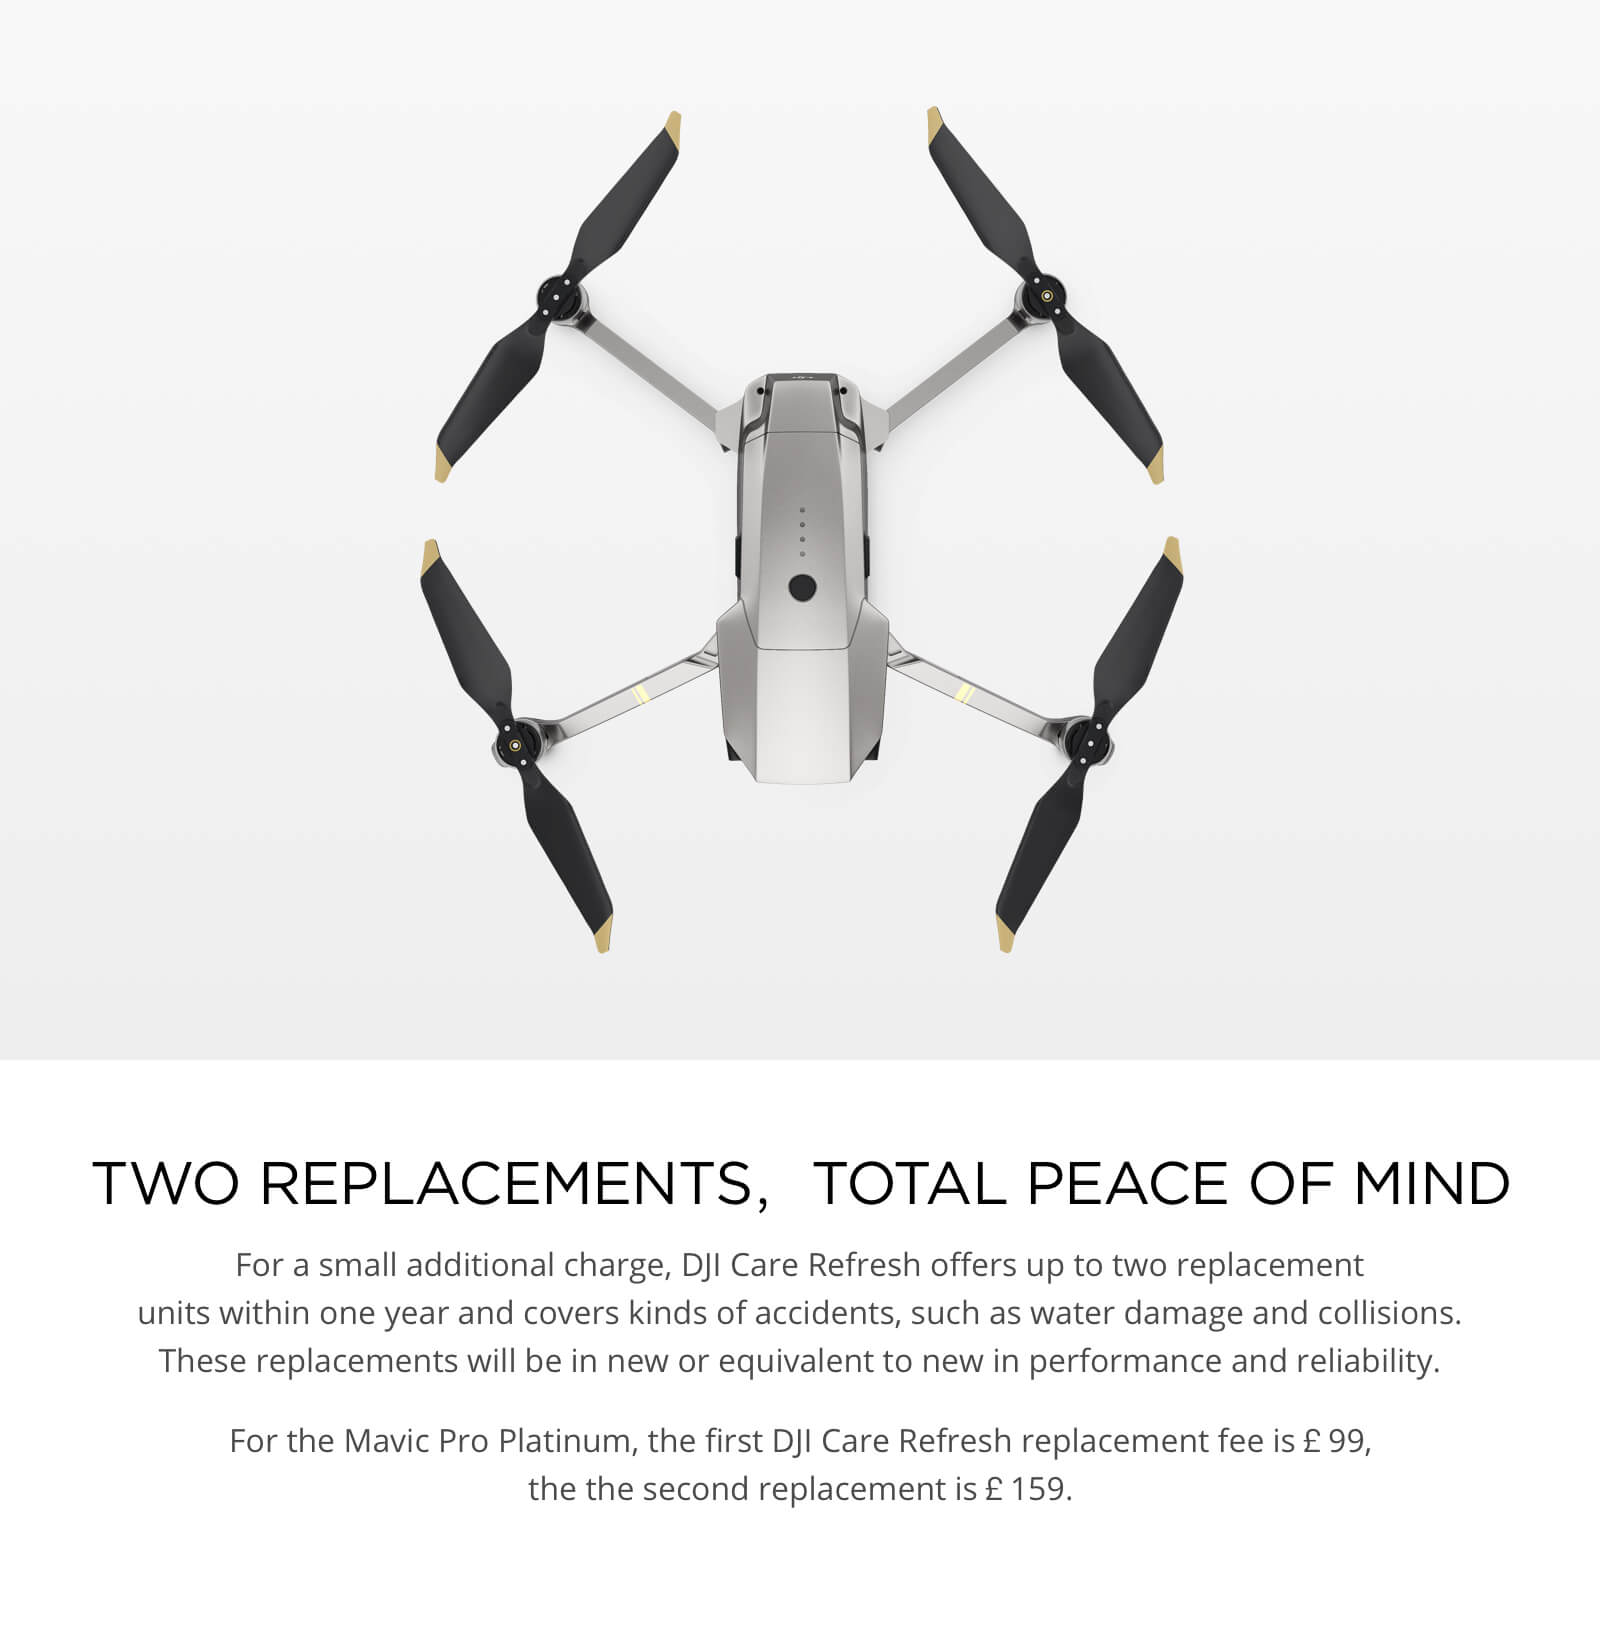 04Two%20Replacements%uFF0CTotal%20Peace%20of%20mind%20mavic%20platinum.jpg